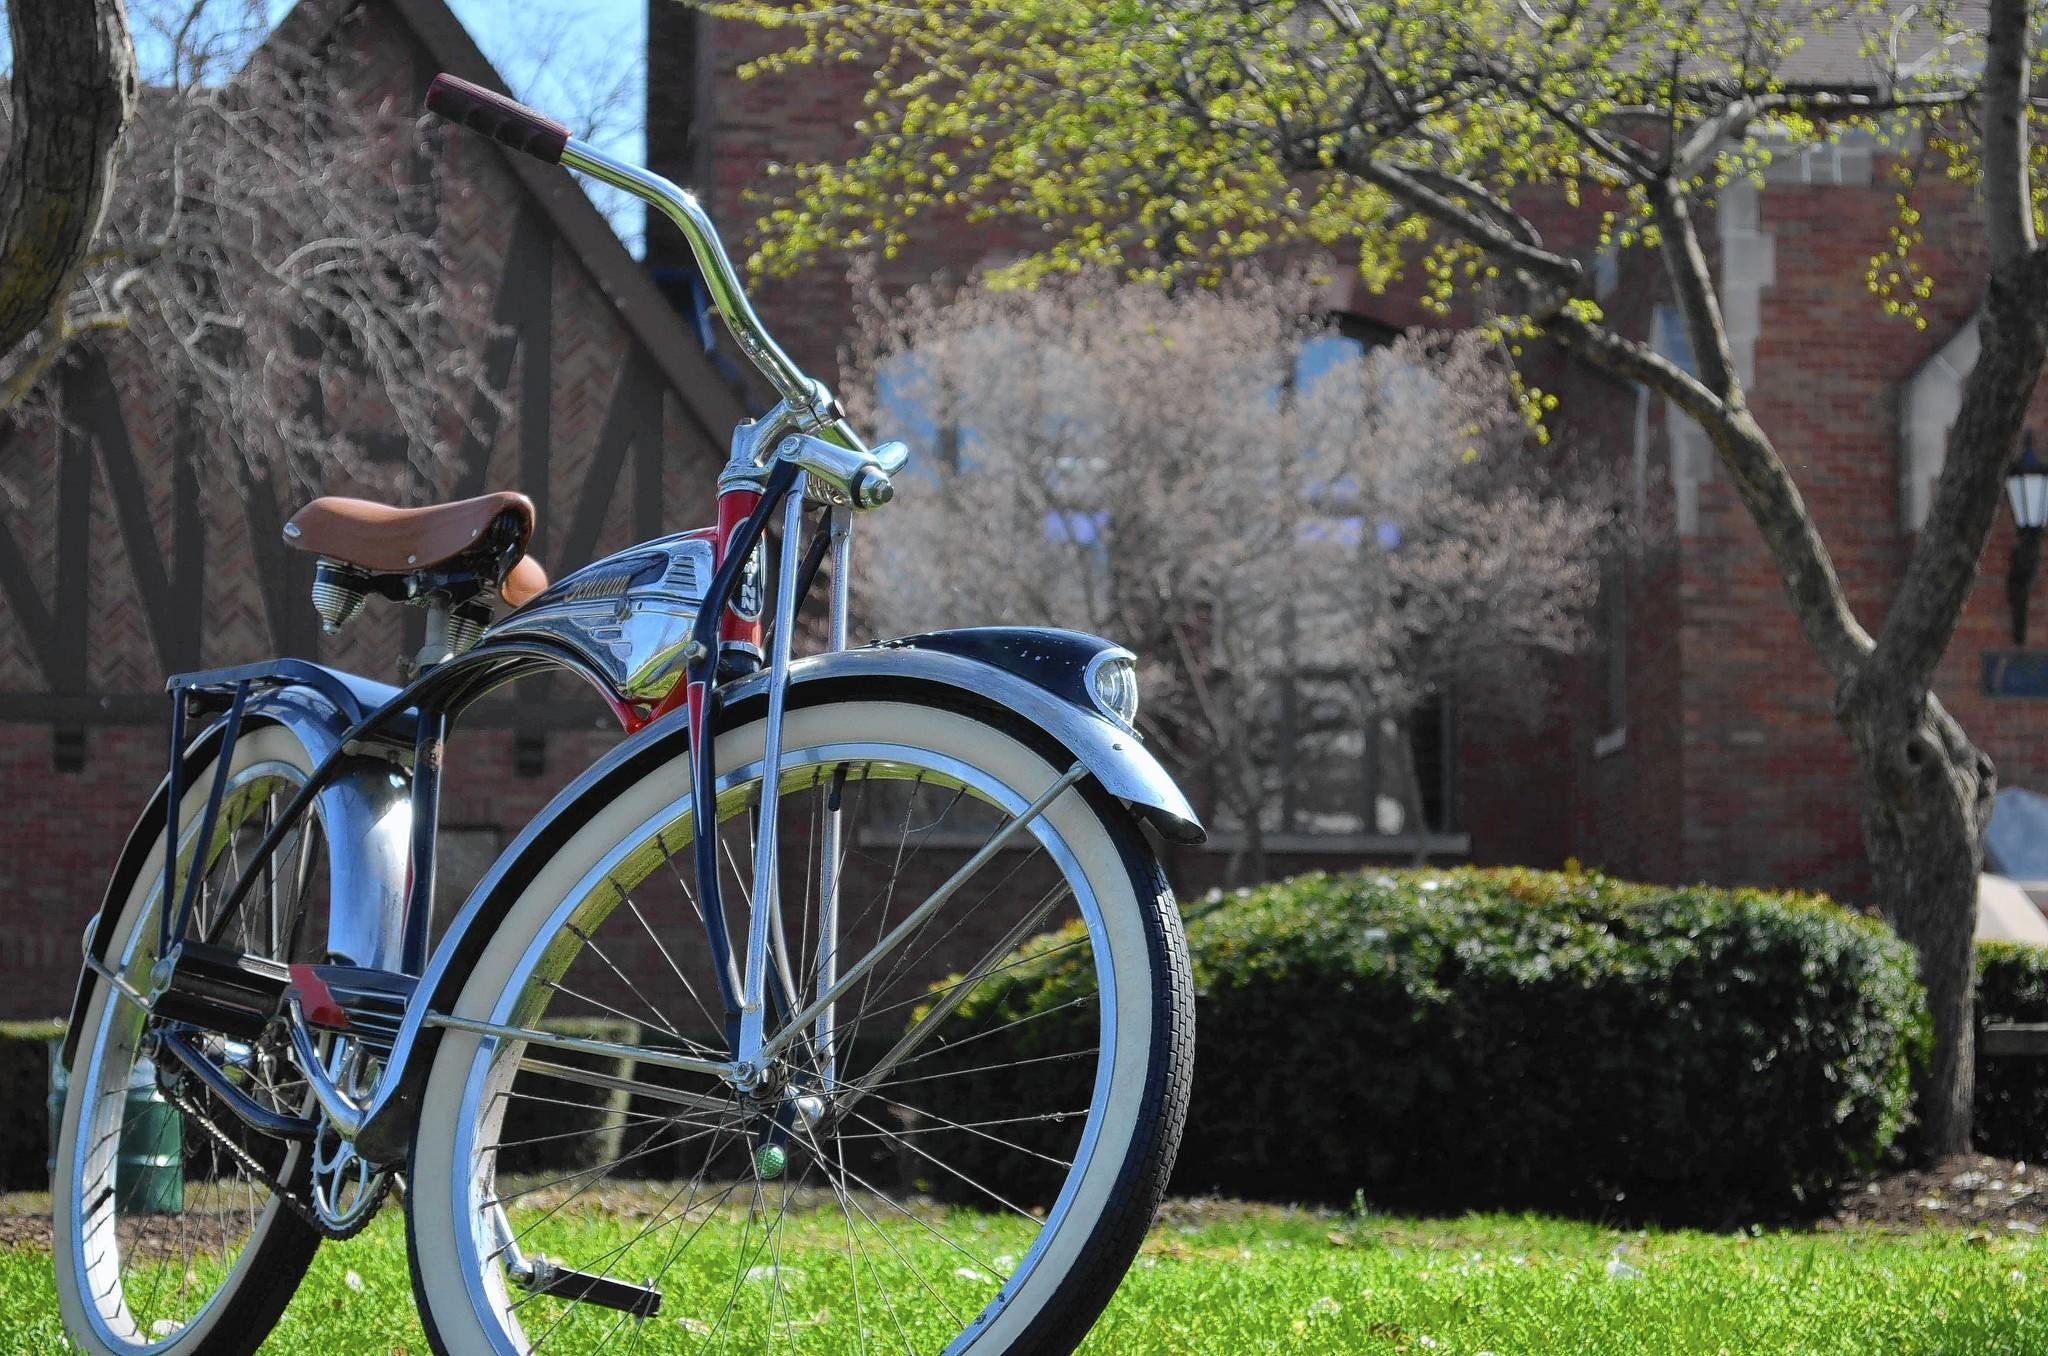 About 150 bike riders are expected to participate in the first community bike ride in Arlington Heights, which begins at Recreation Park on June 14.